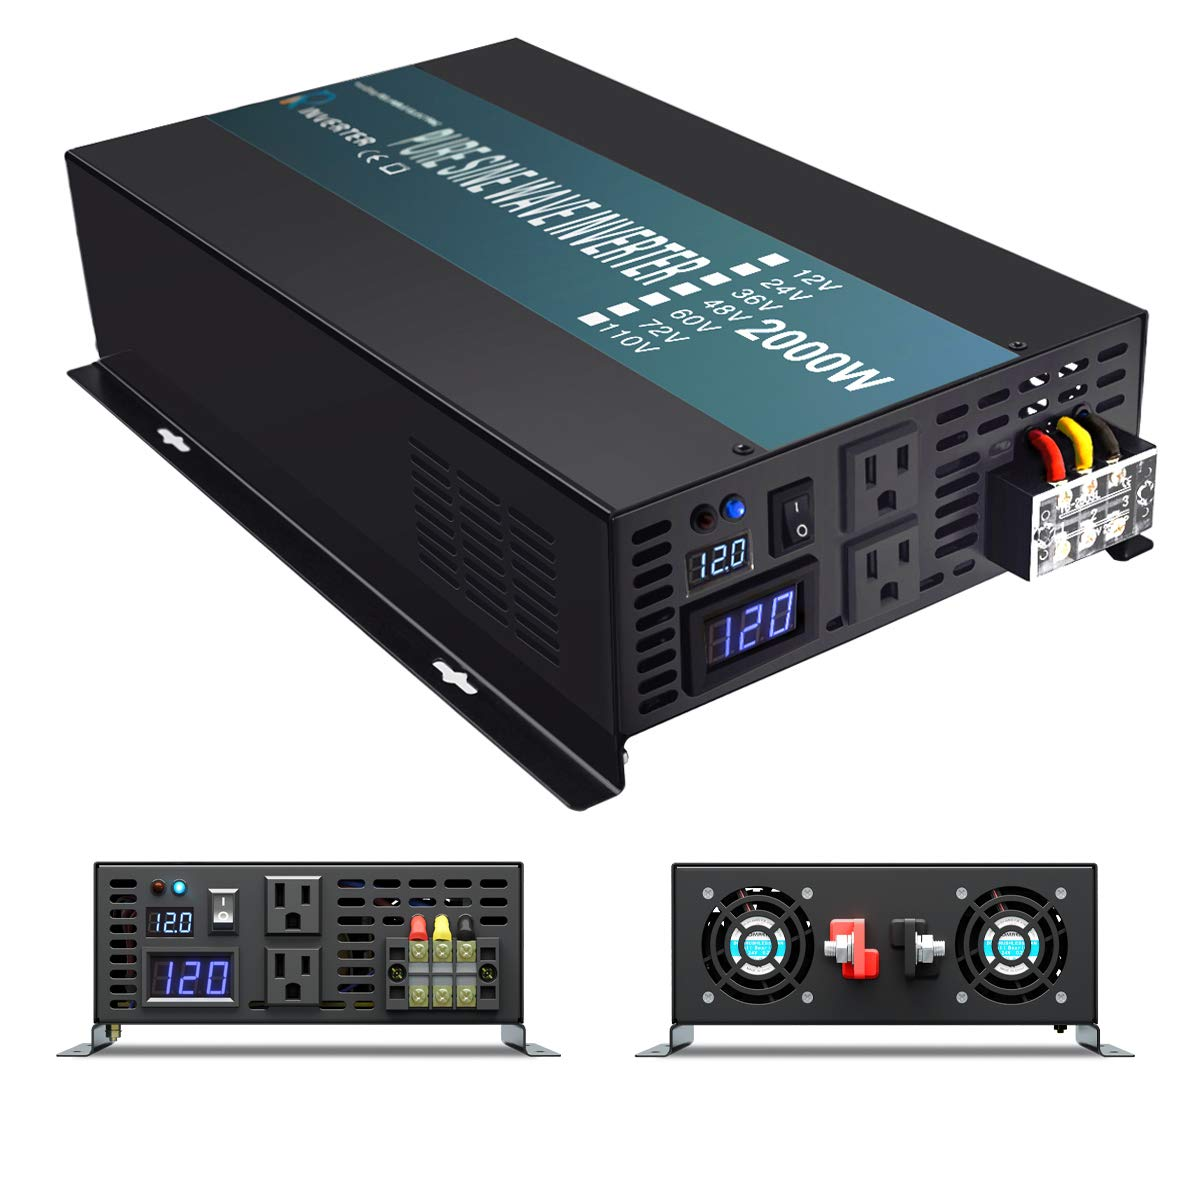 WZRELB Reliable 2000W Pure Sine Wave Inverter 12v 120v 60hz LED Display Solar Power Inverter Black